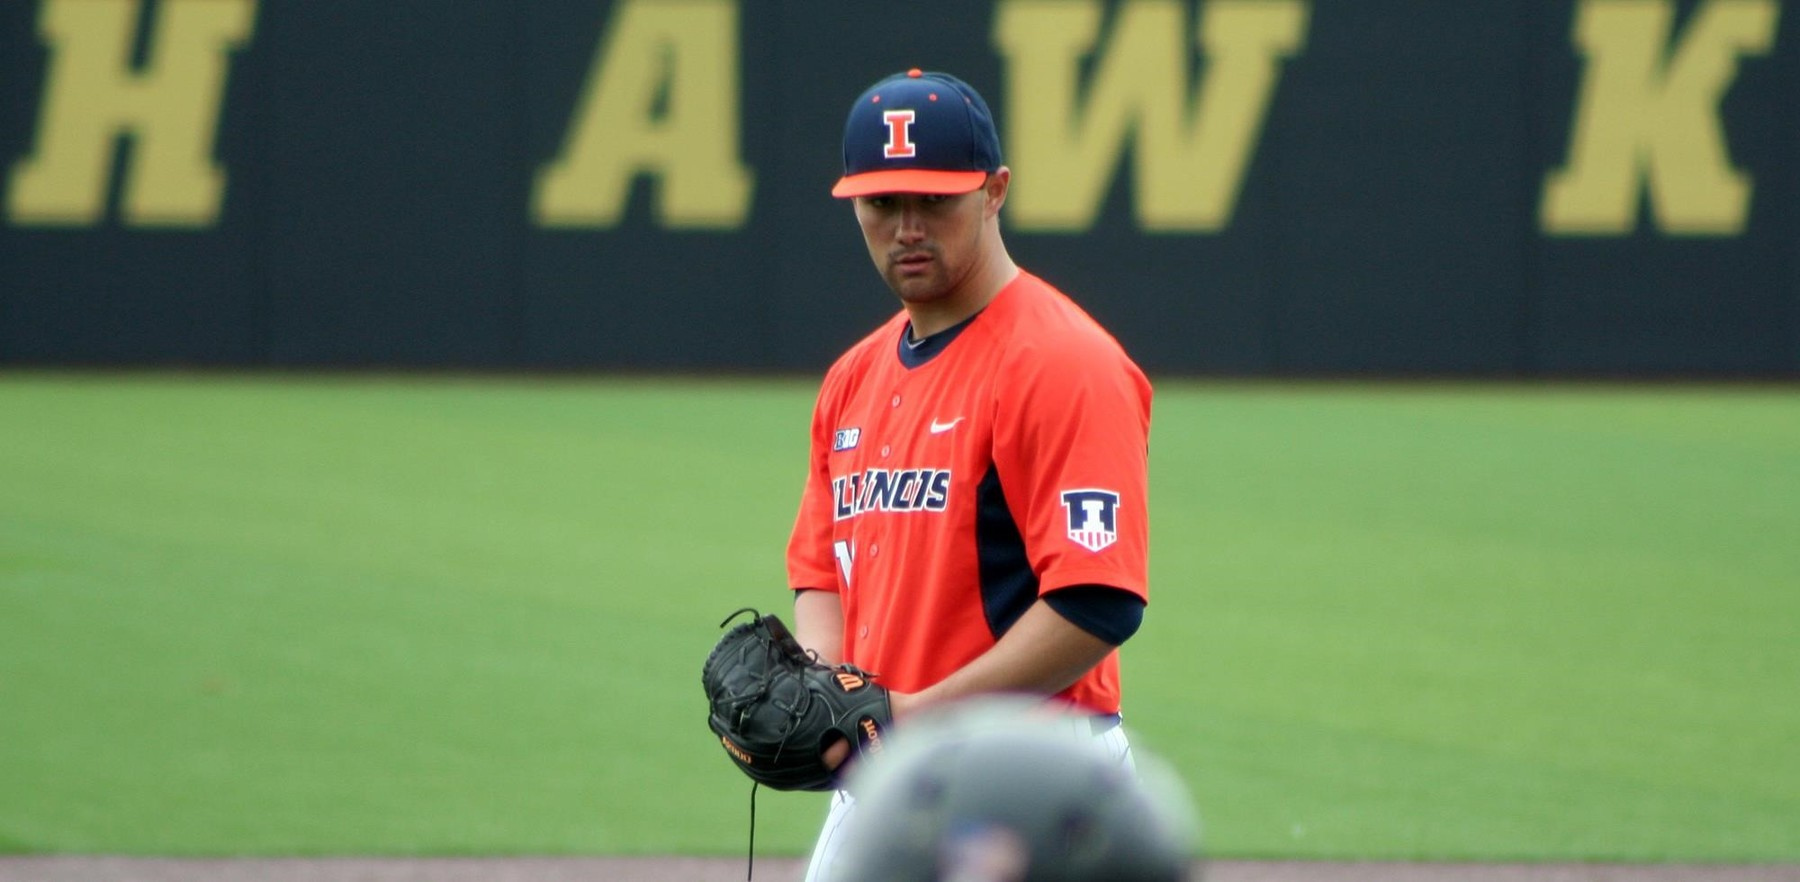 a right handed pitcher on the mound for the Illini